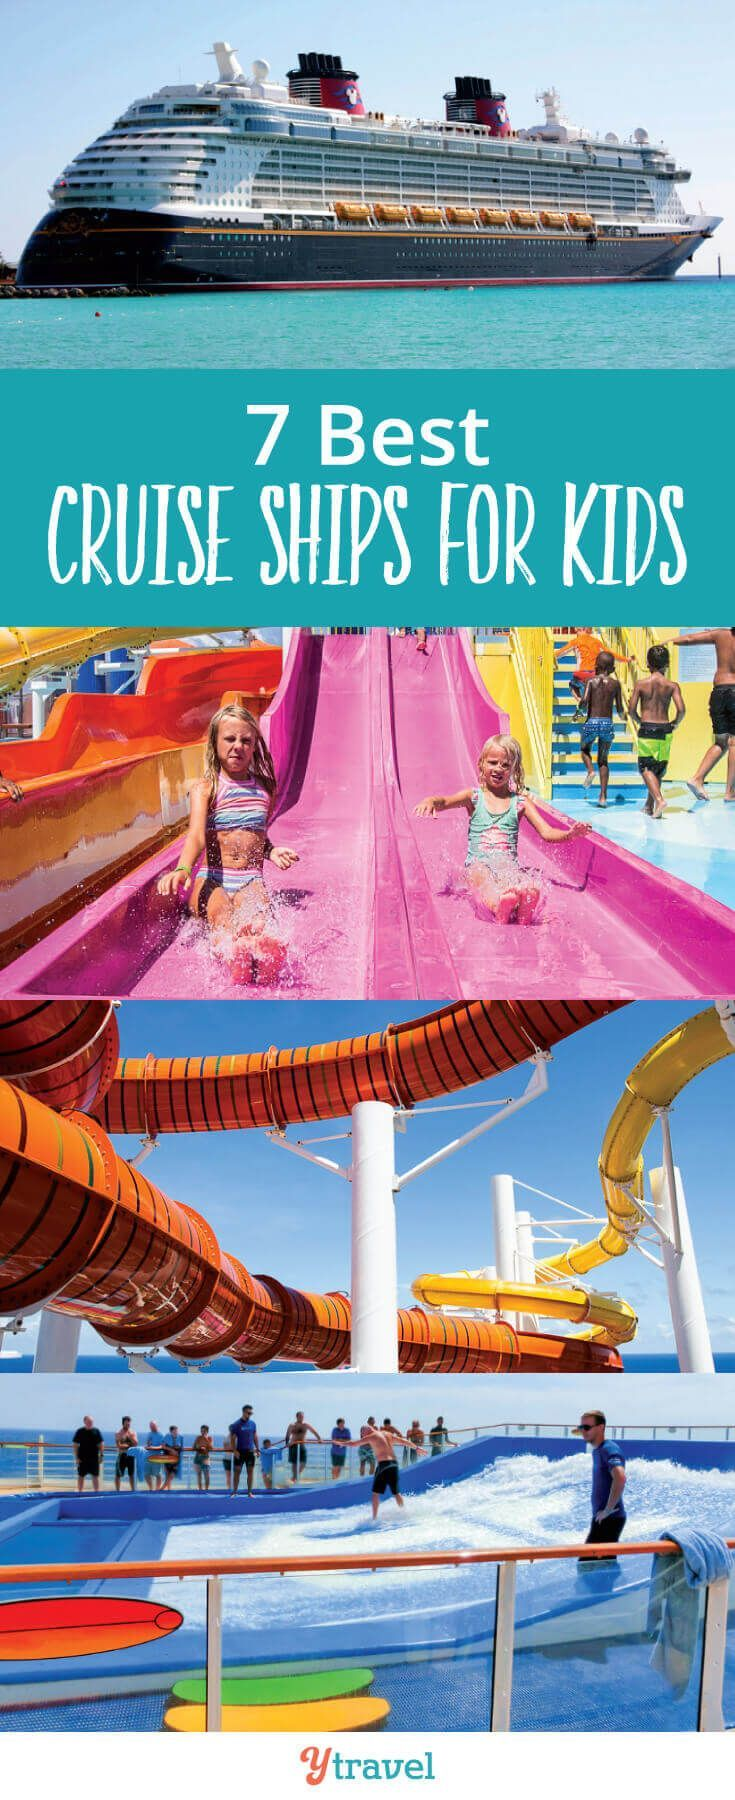 7 Best Cruise Ships For Kids Rated By A 16 Year Old Kid Best Cruise Ships Cruise Kids Best Cruise Lines